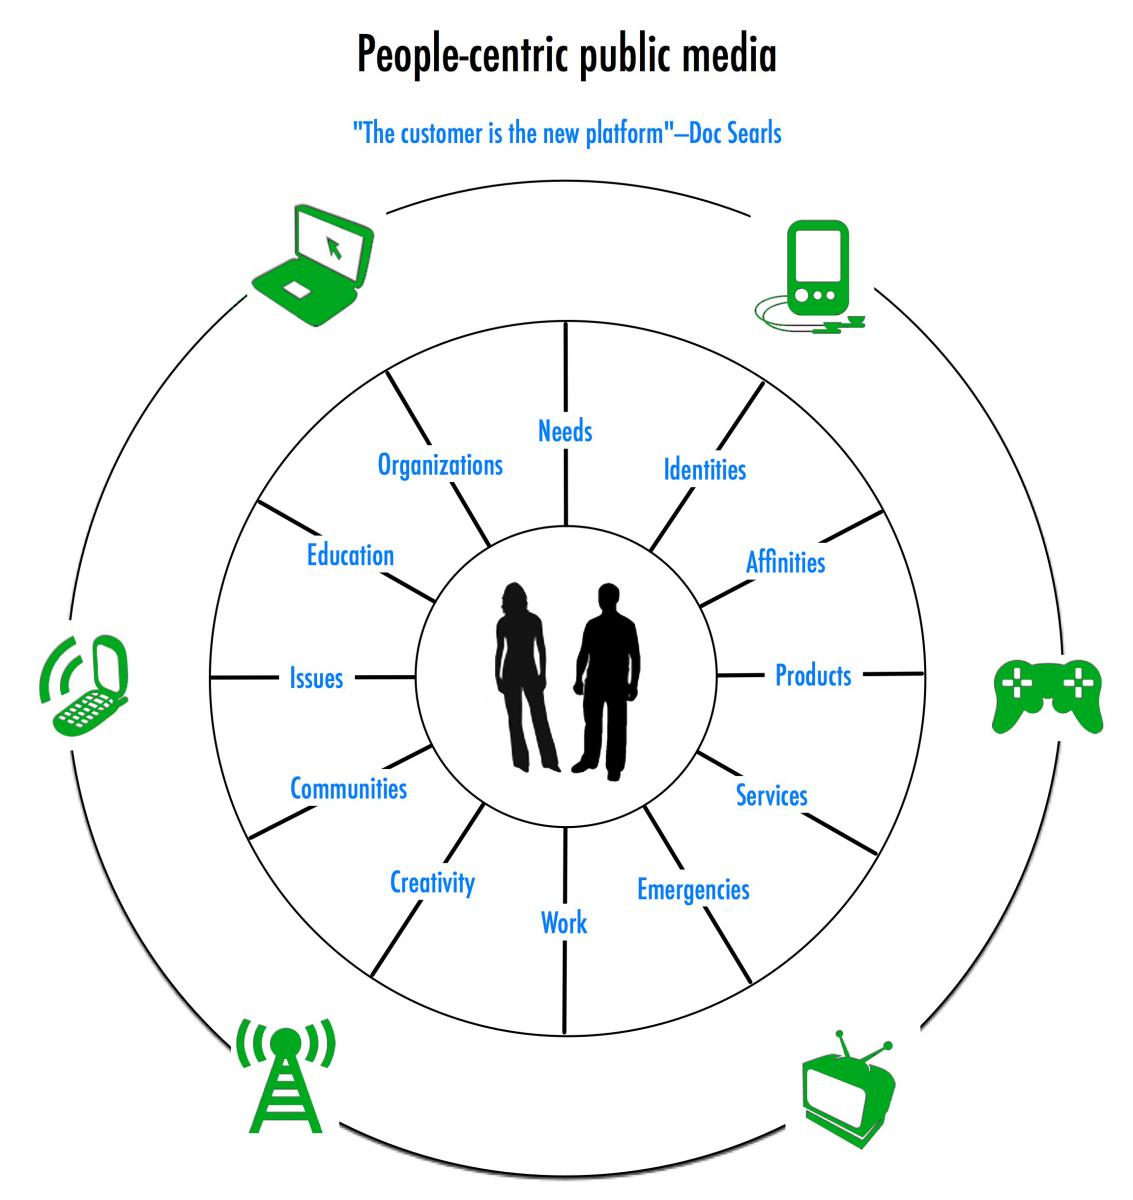 People-centric public media